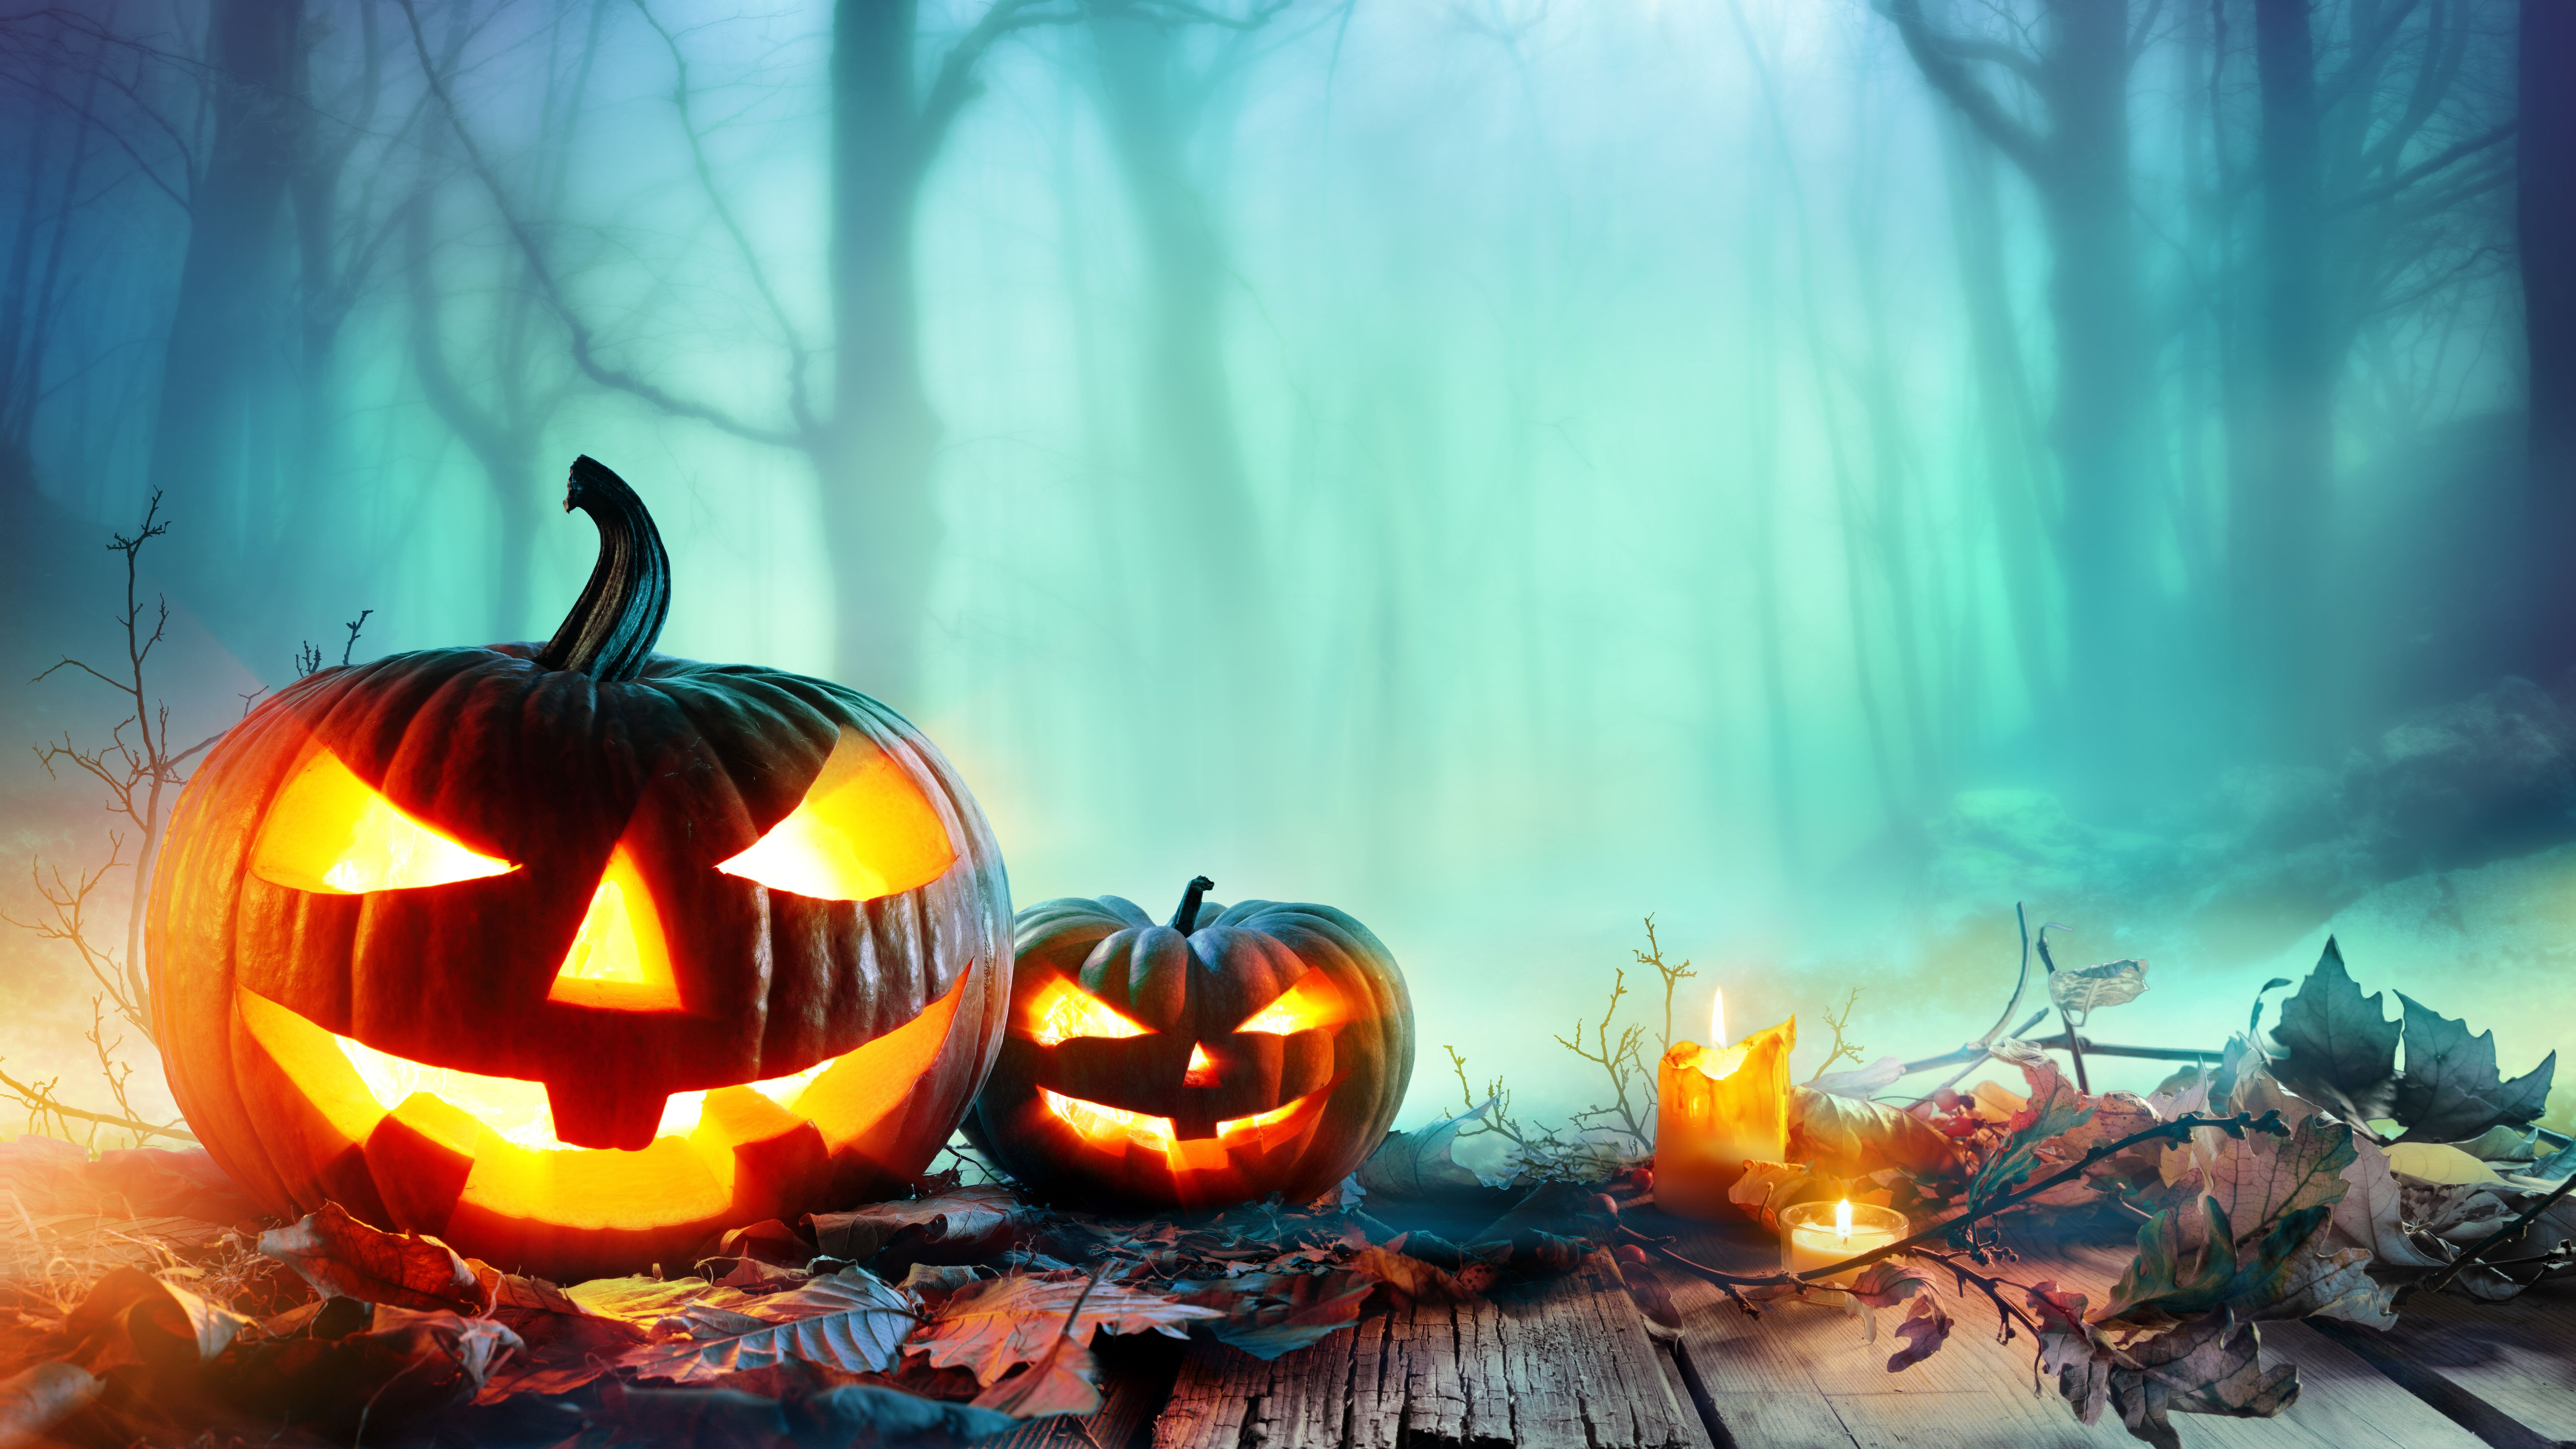 7680x4320 8k halloween 8k hd 4k wallpapers, images, backgrounds